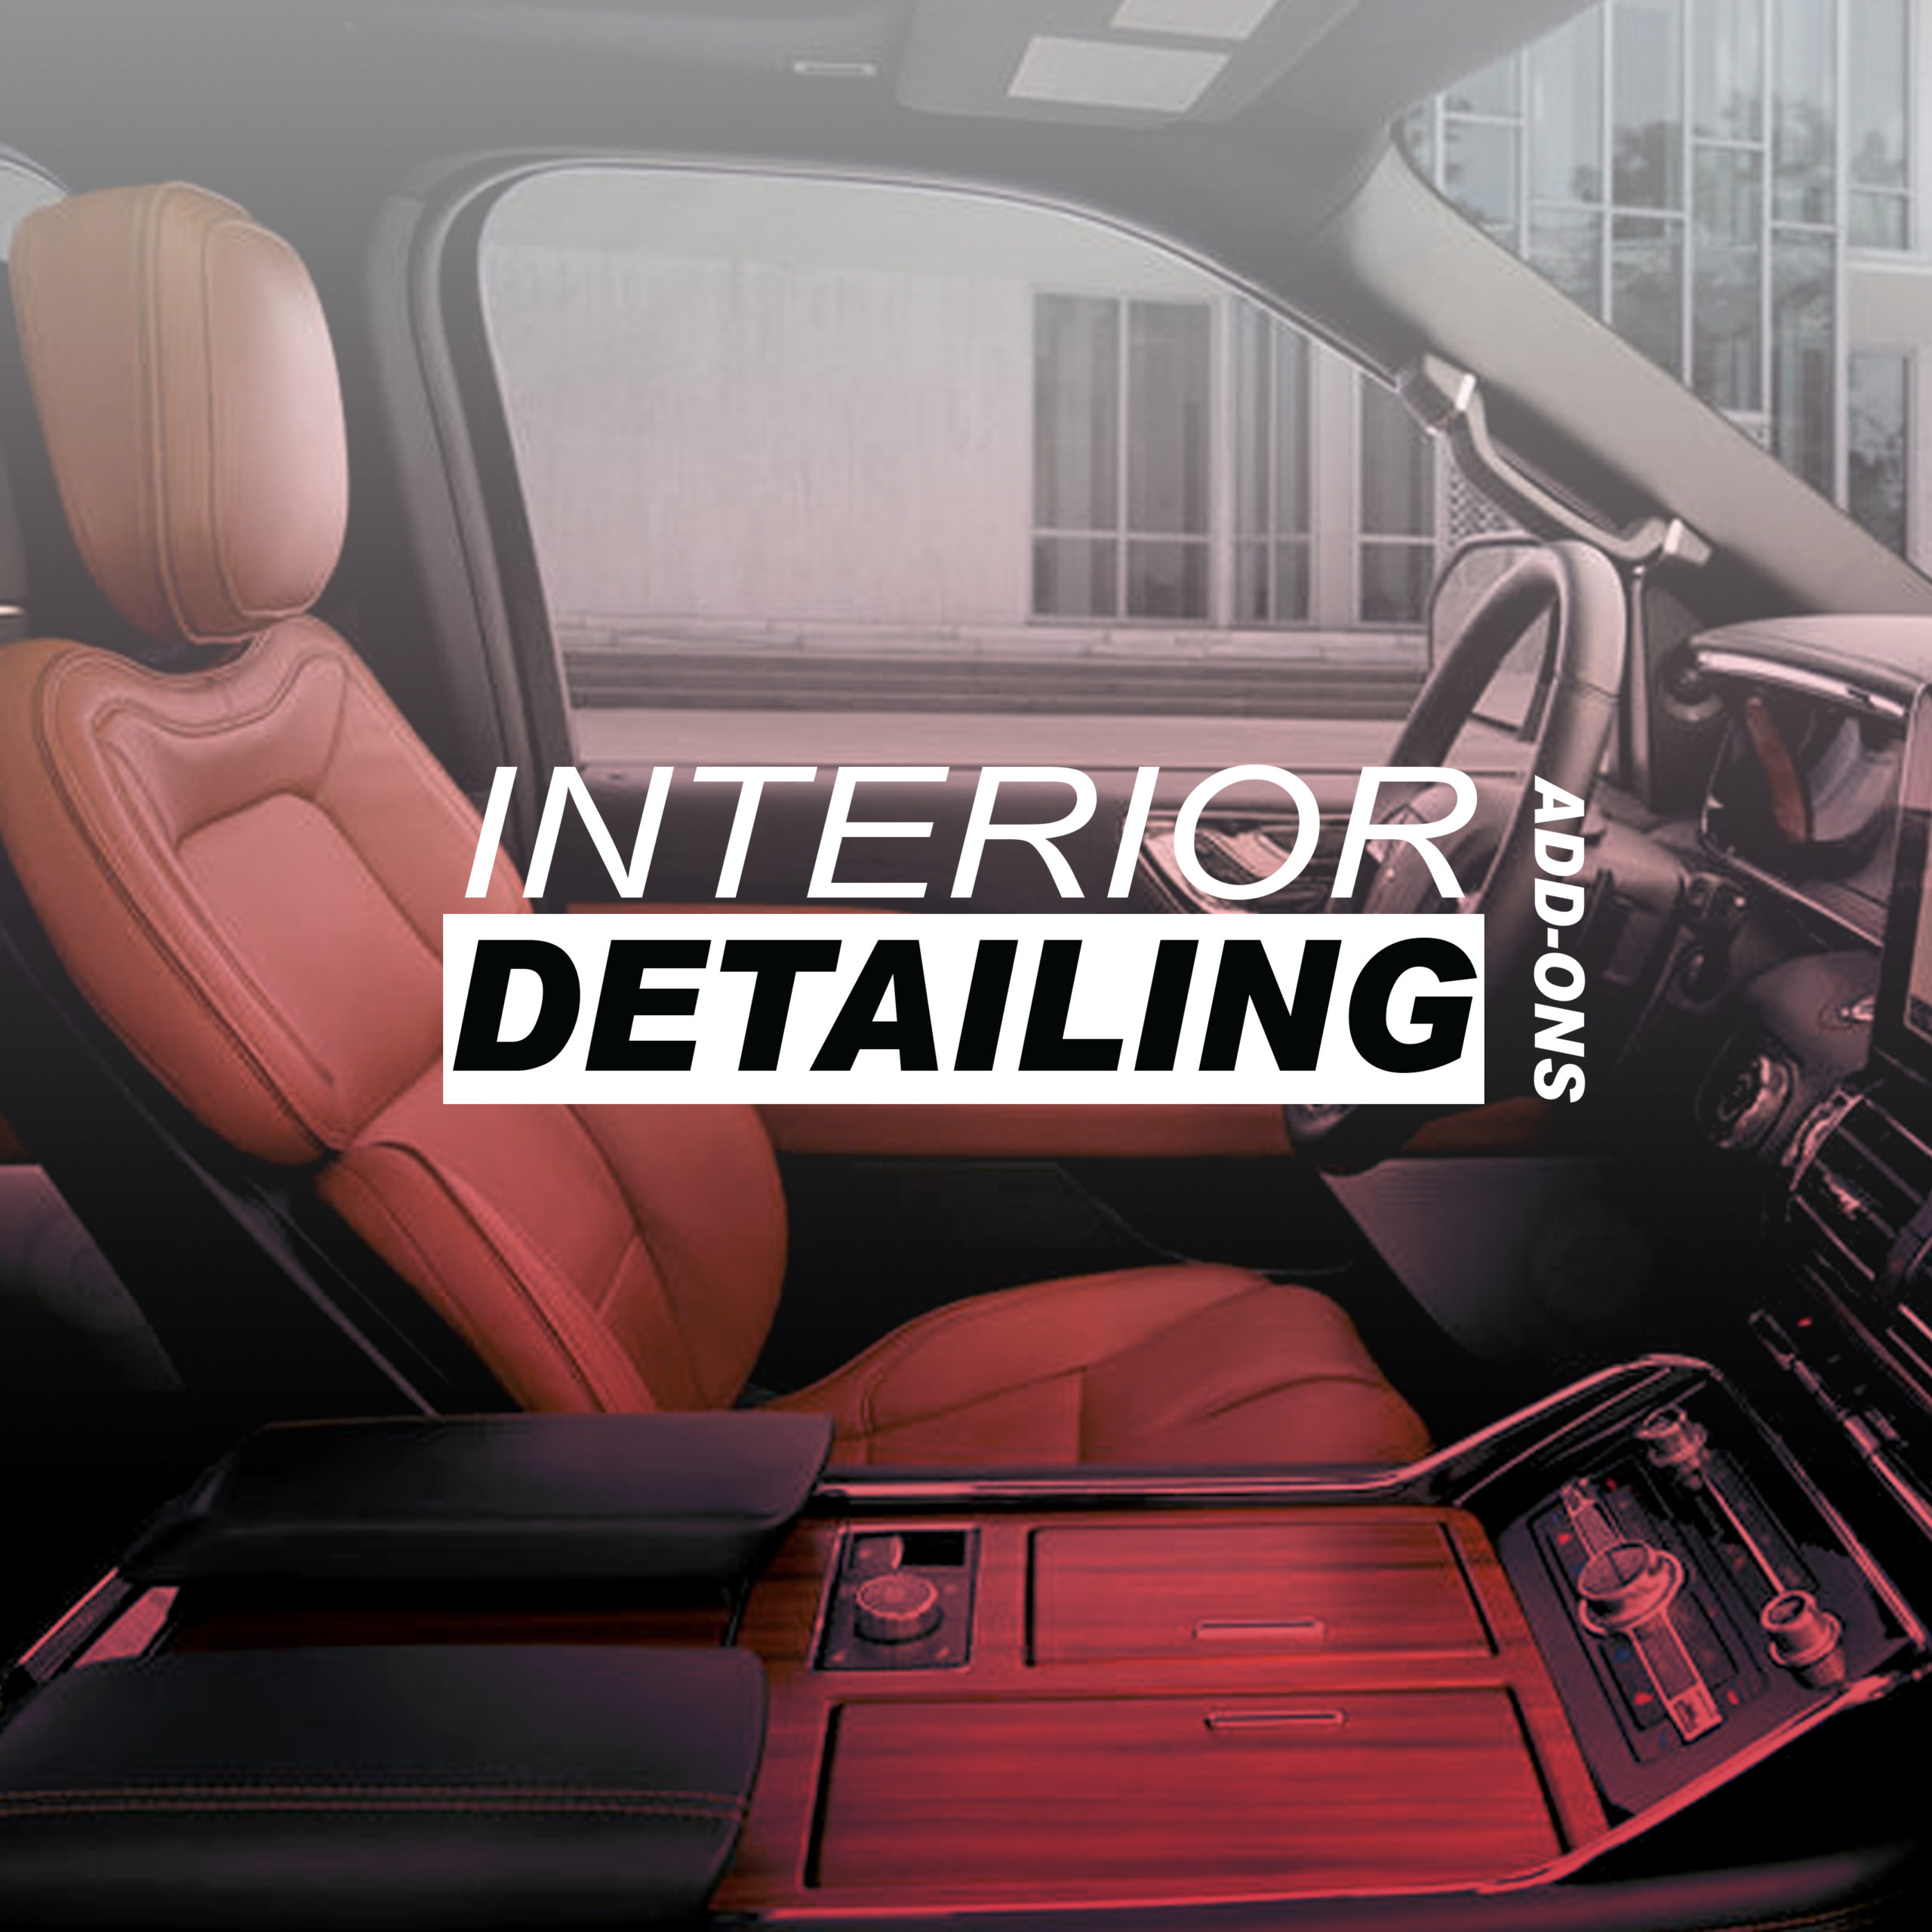 Interior Detailing Add-ons